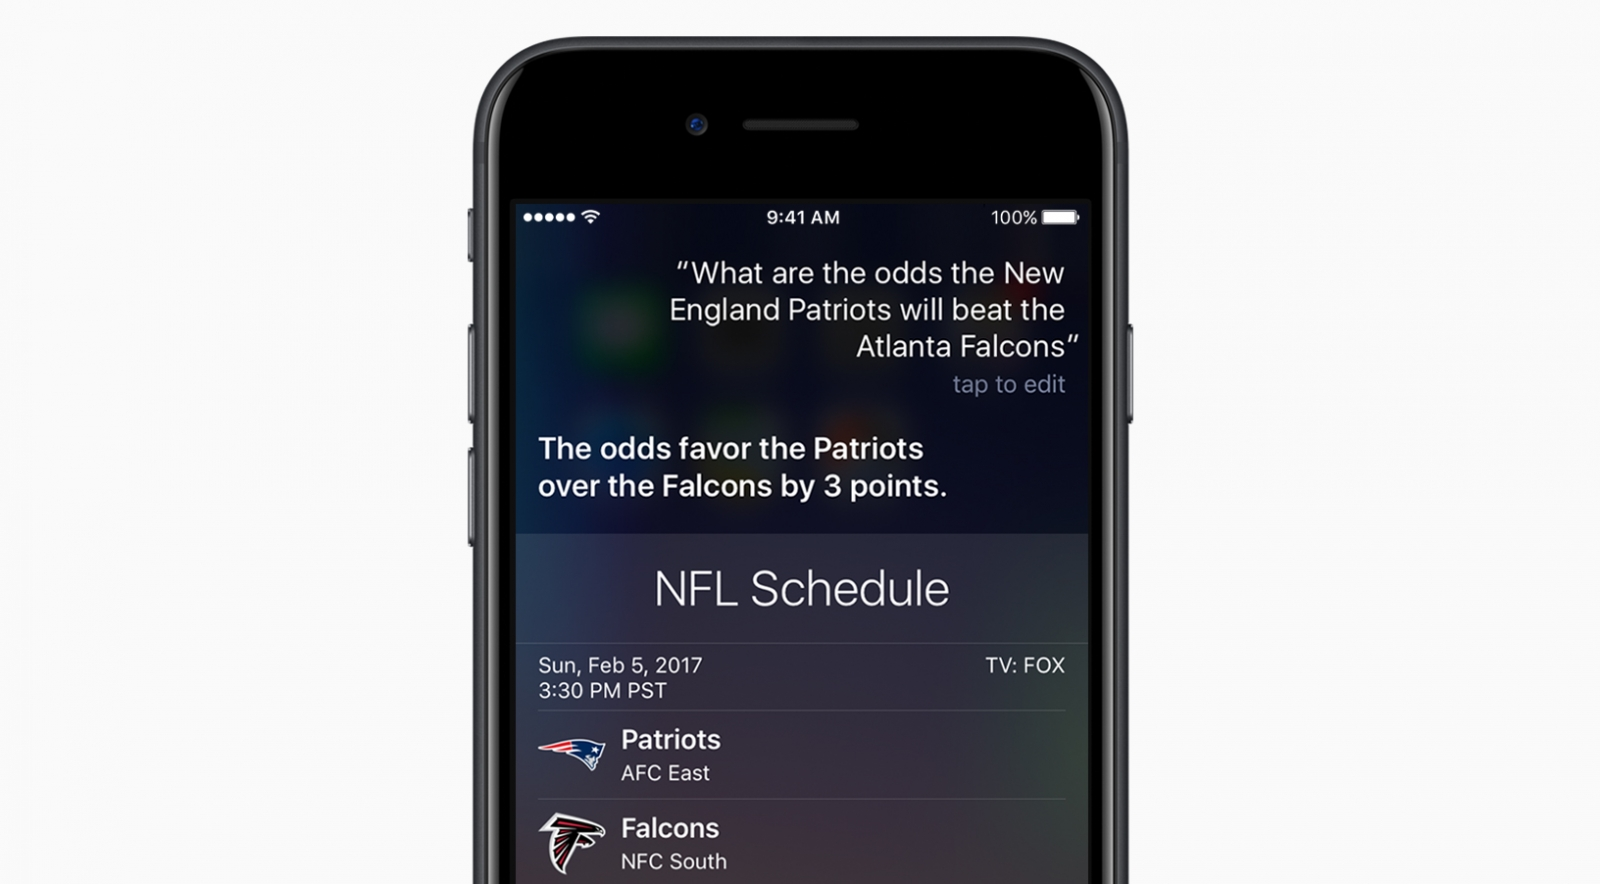 Apple Siri Super Bowl stats